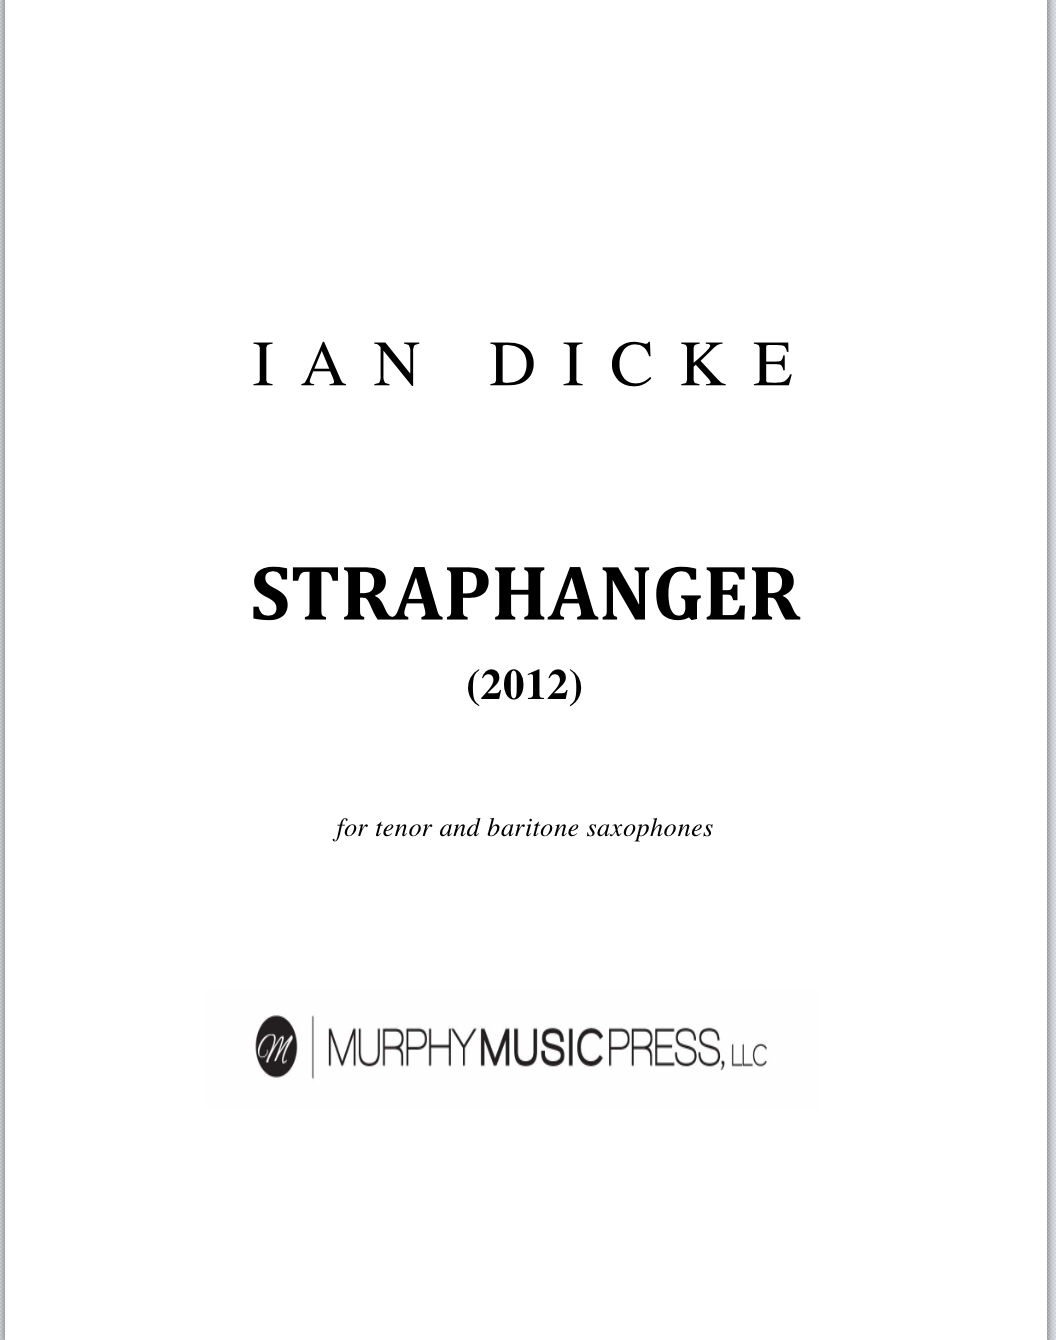 Straphanger For Tenor And Baritone Saxophones by Ian Dicke